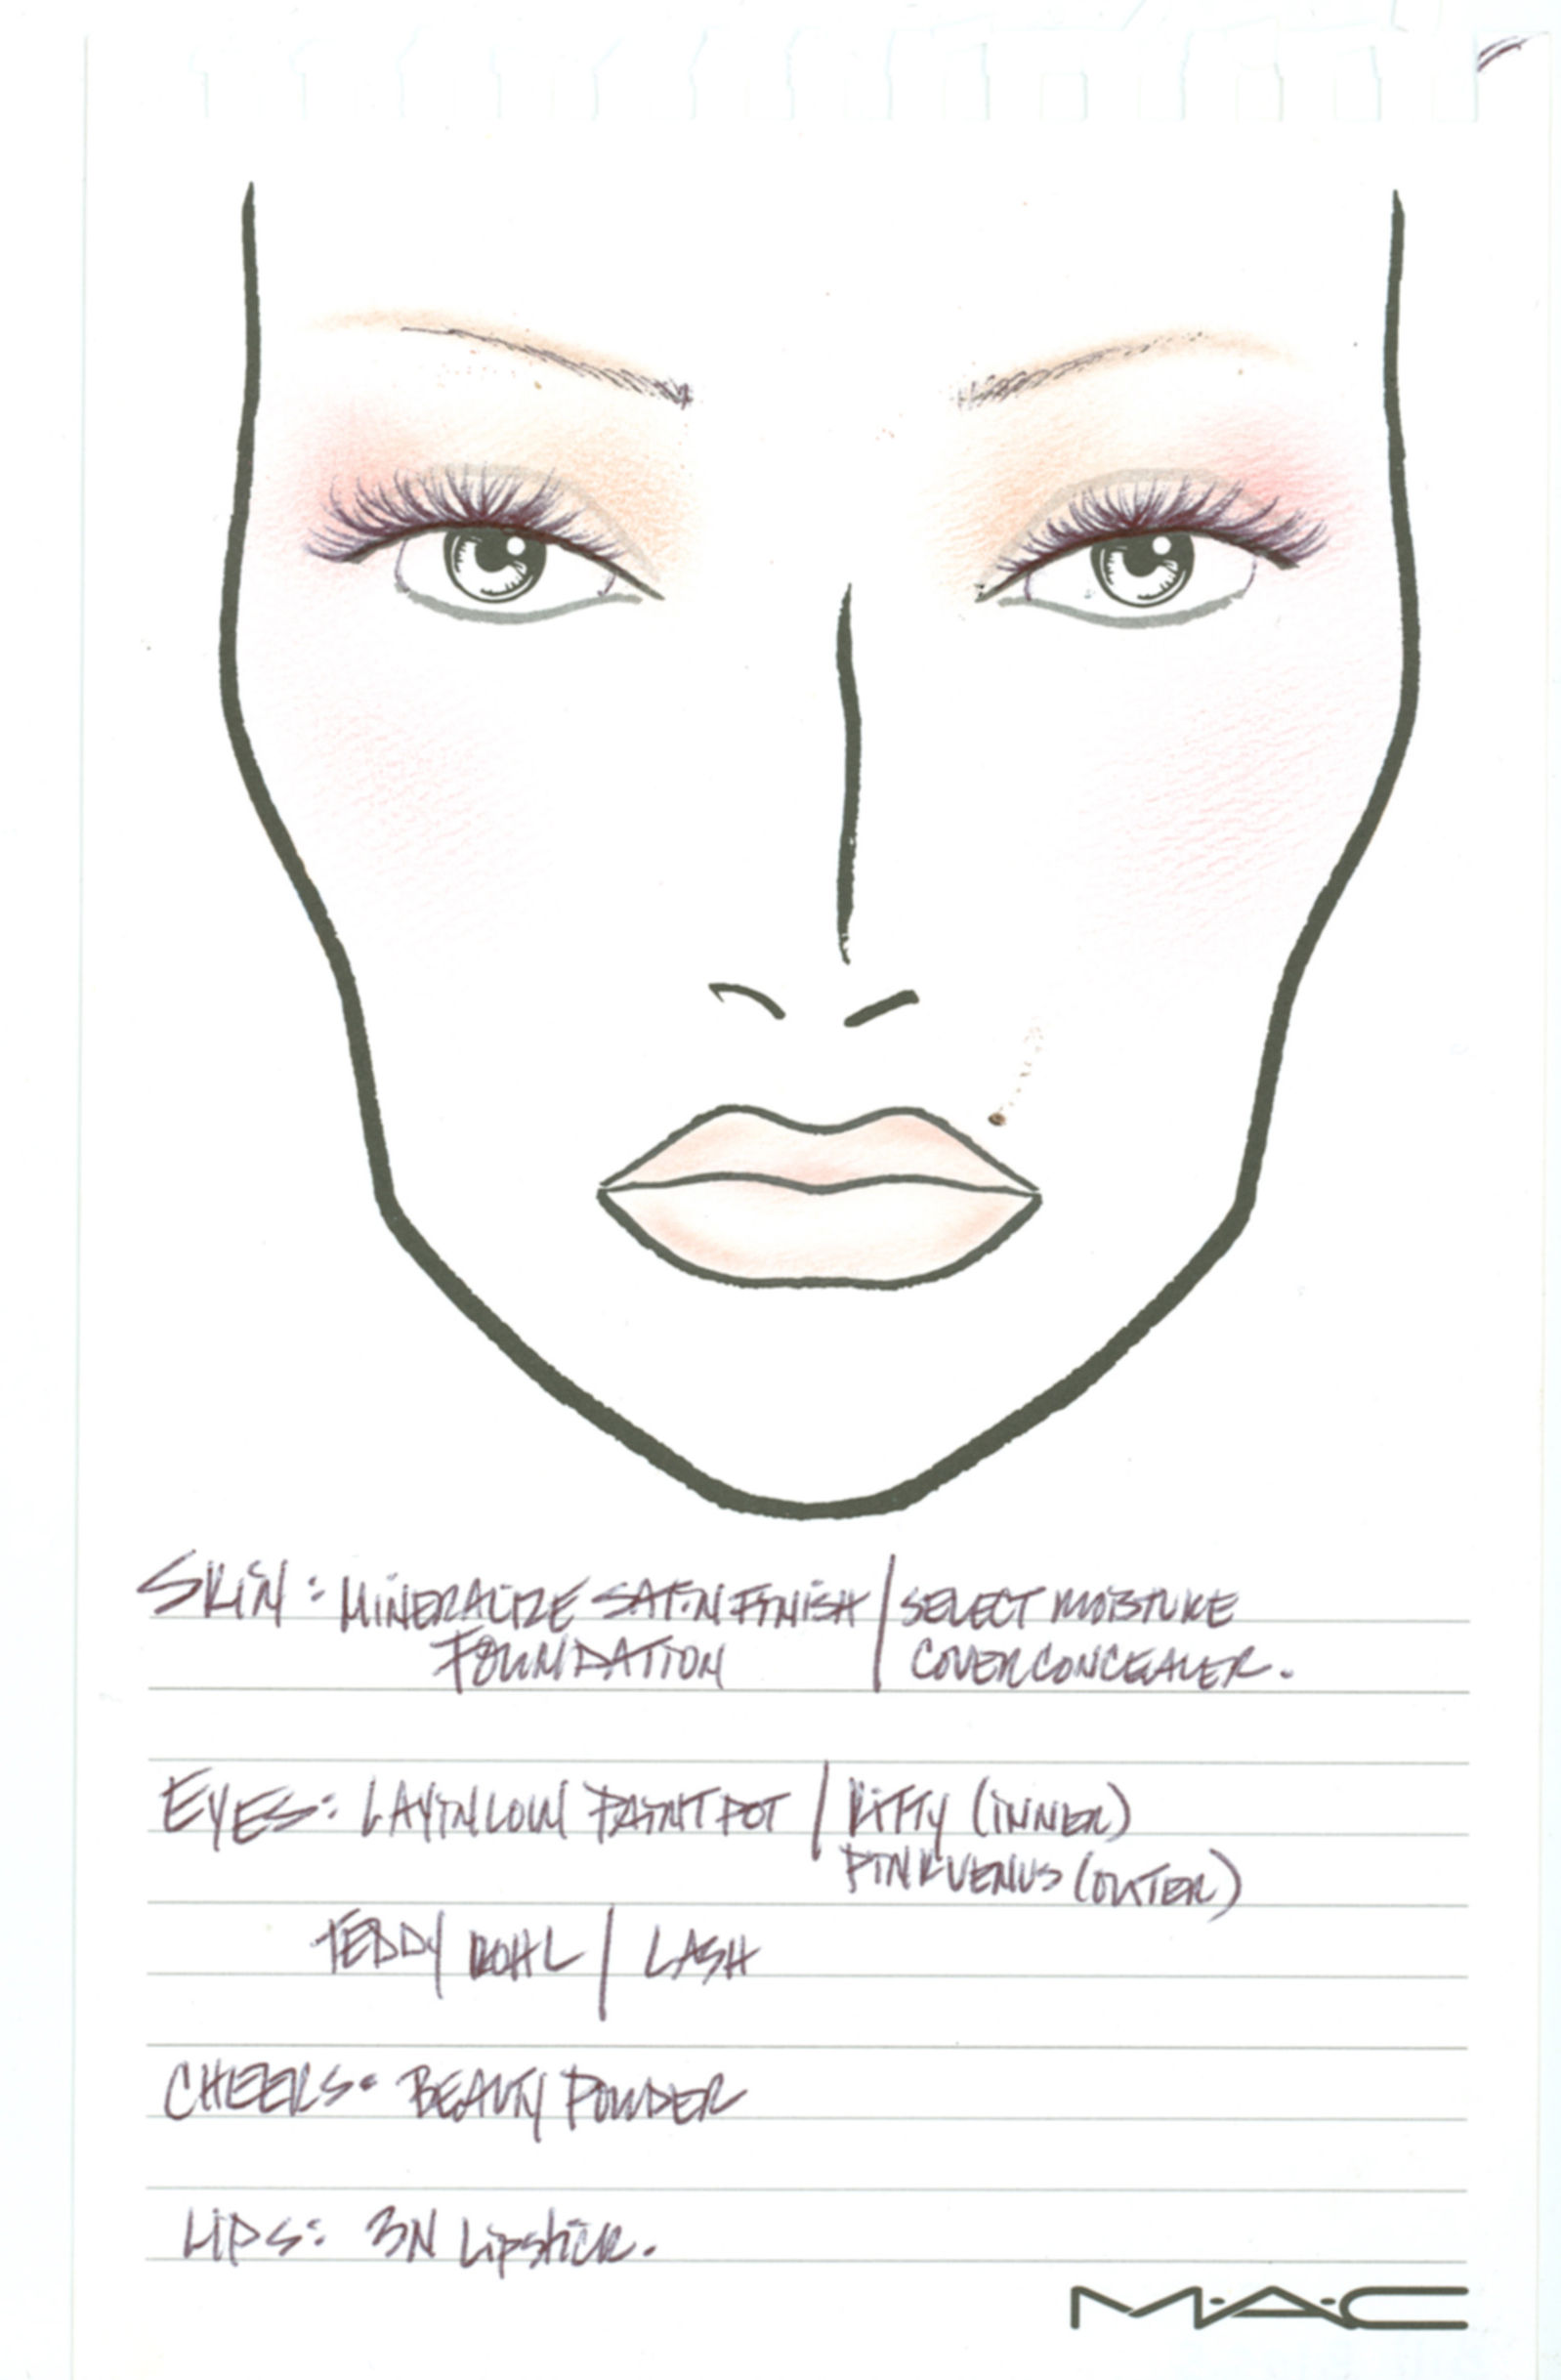 Turbo MAC Cosmetics - N Collection Face Charts from Fashion Week FA01